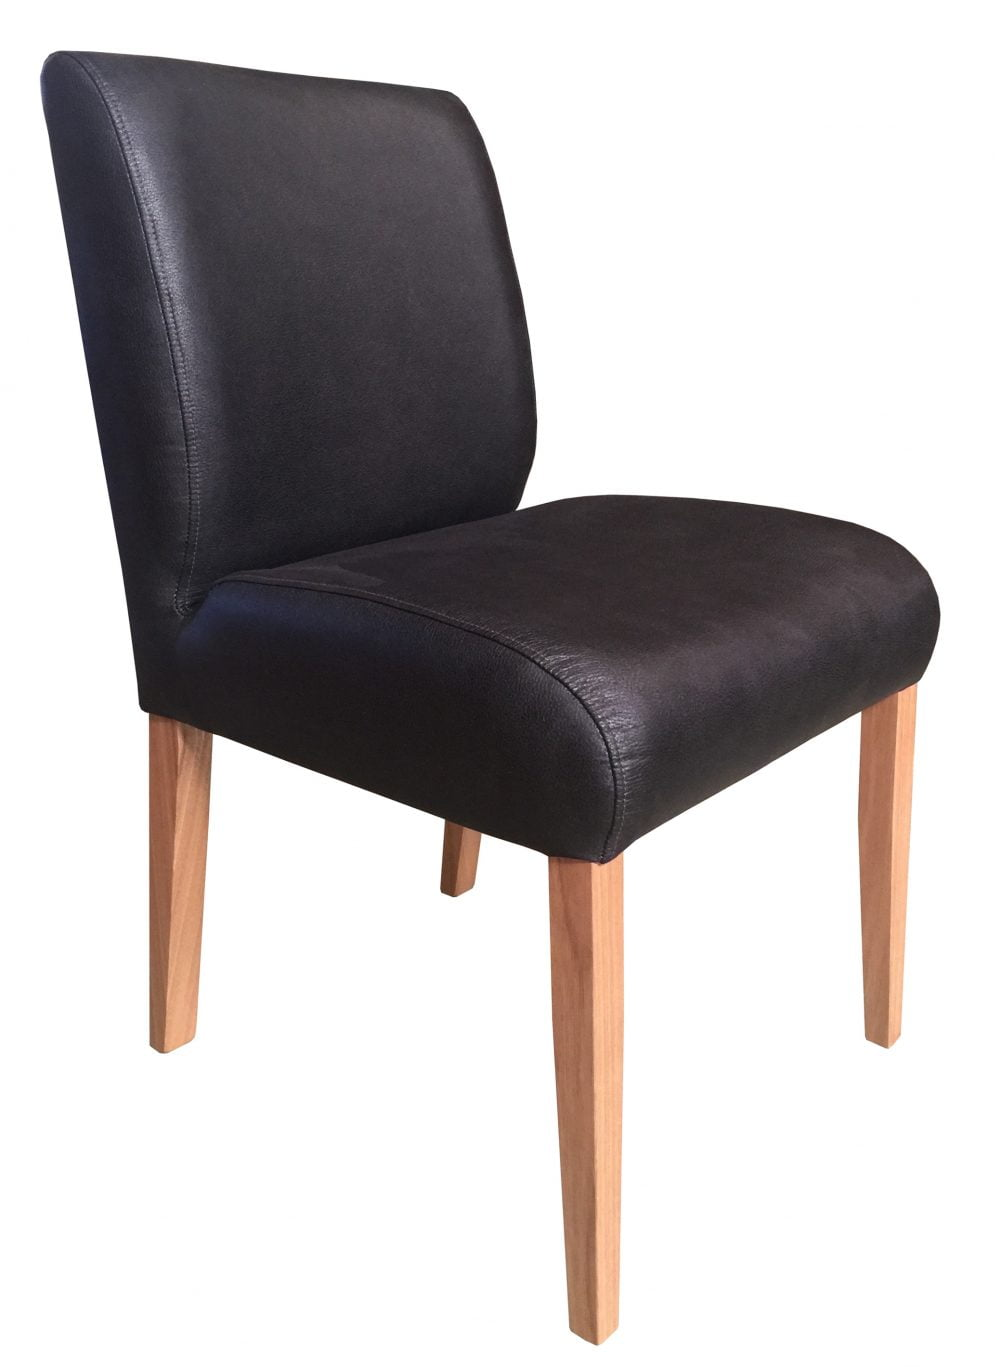 dining room chair covers melbourne sydney - mabarrack furniture factory adelaide, south australia